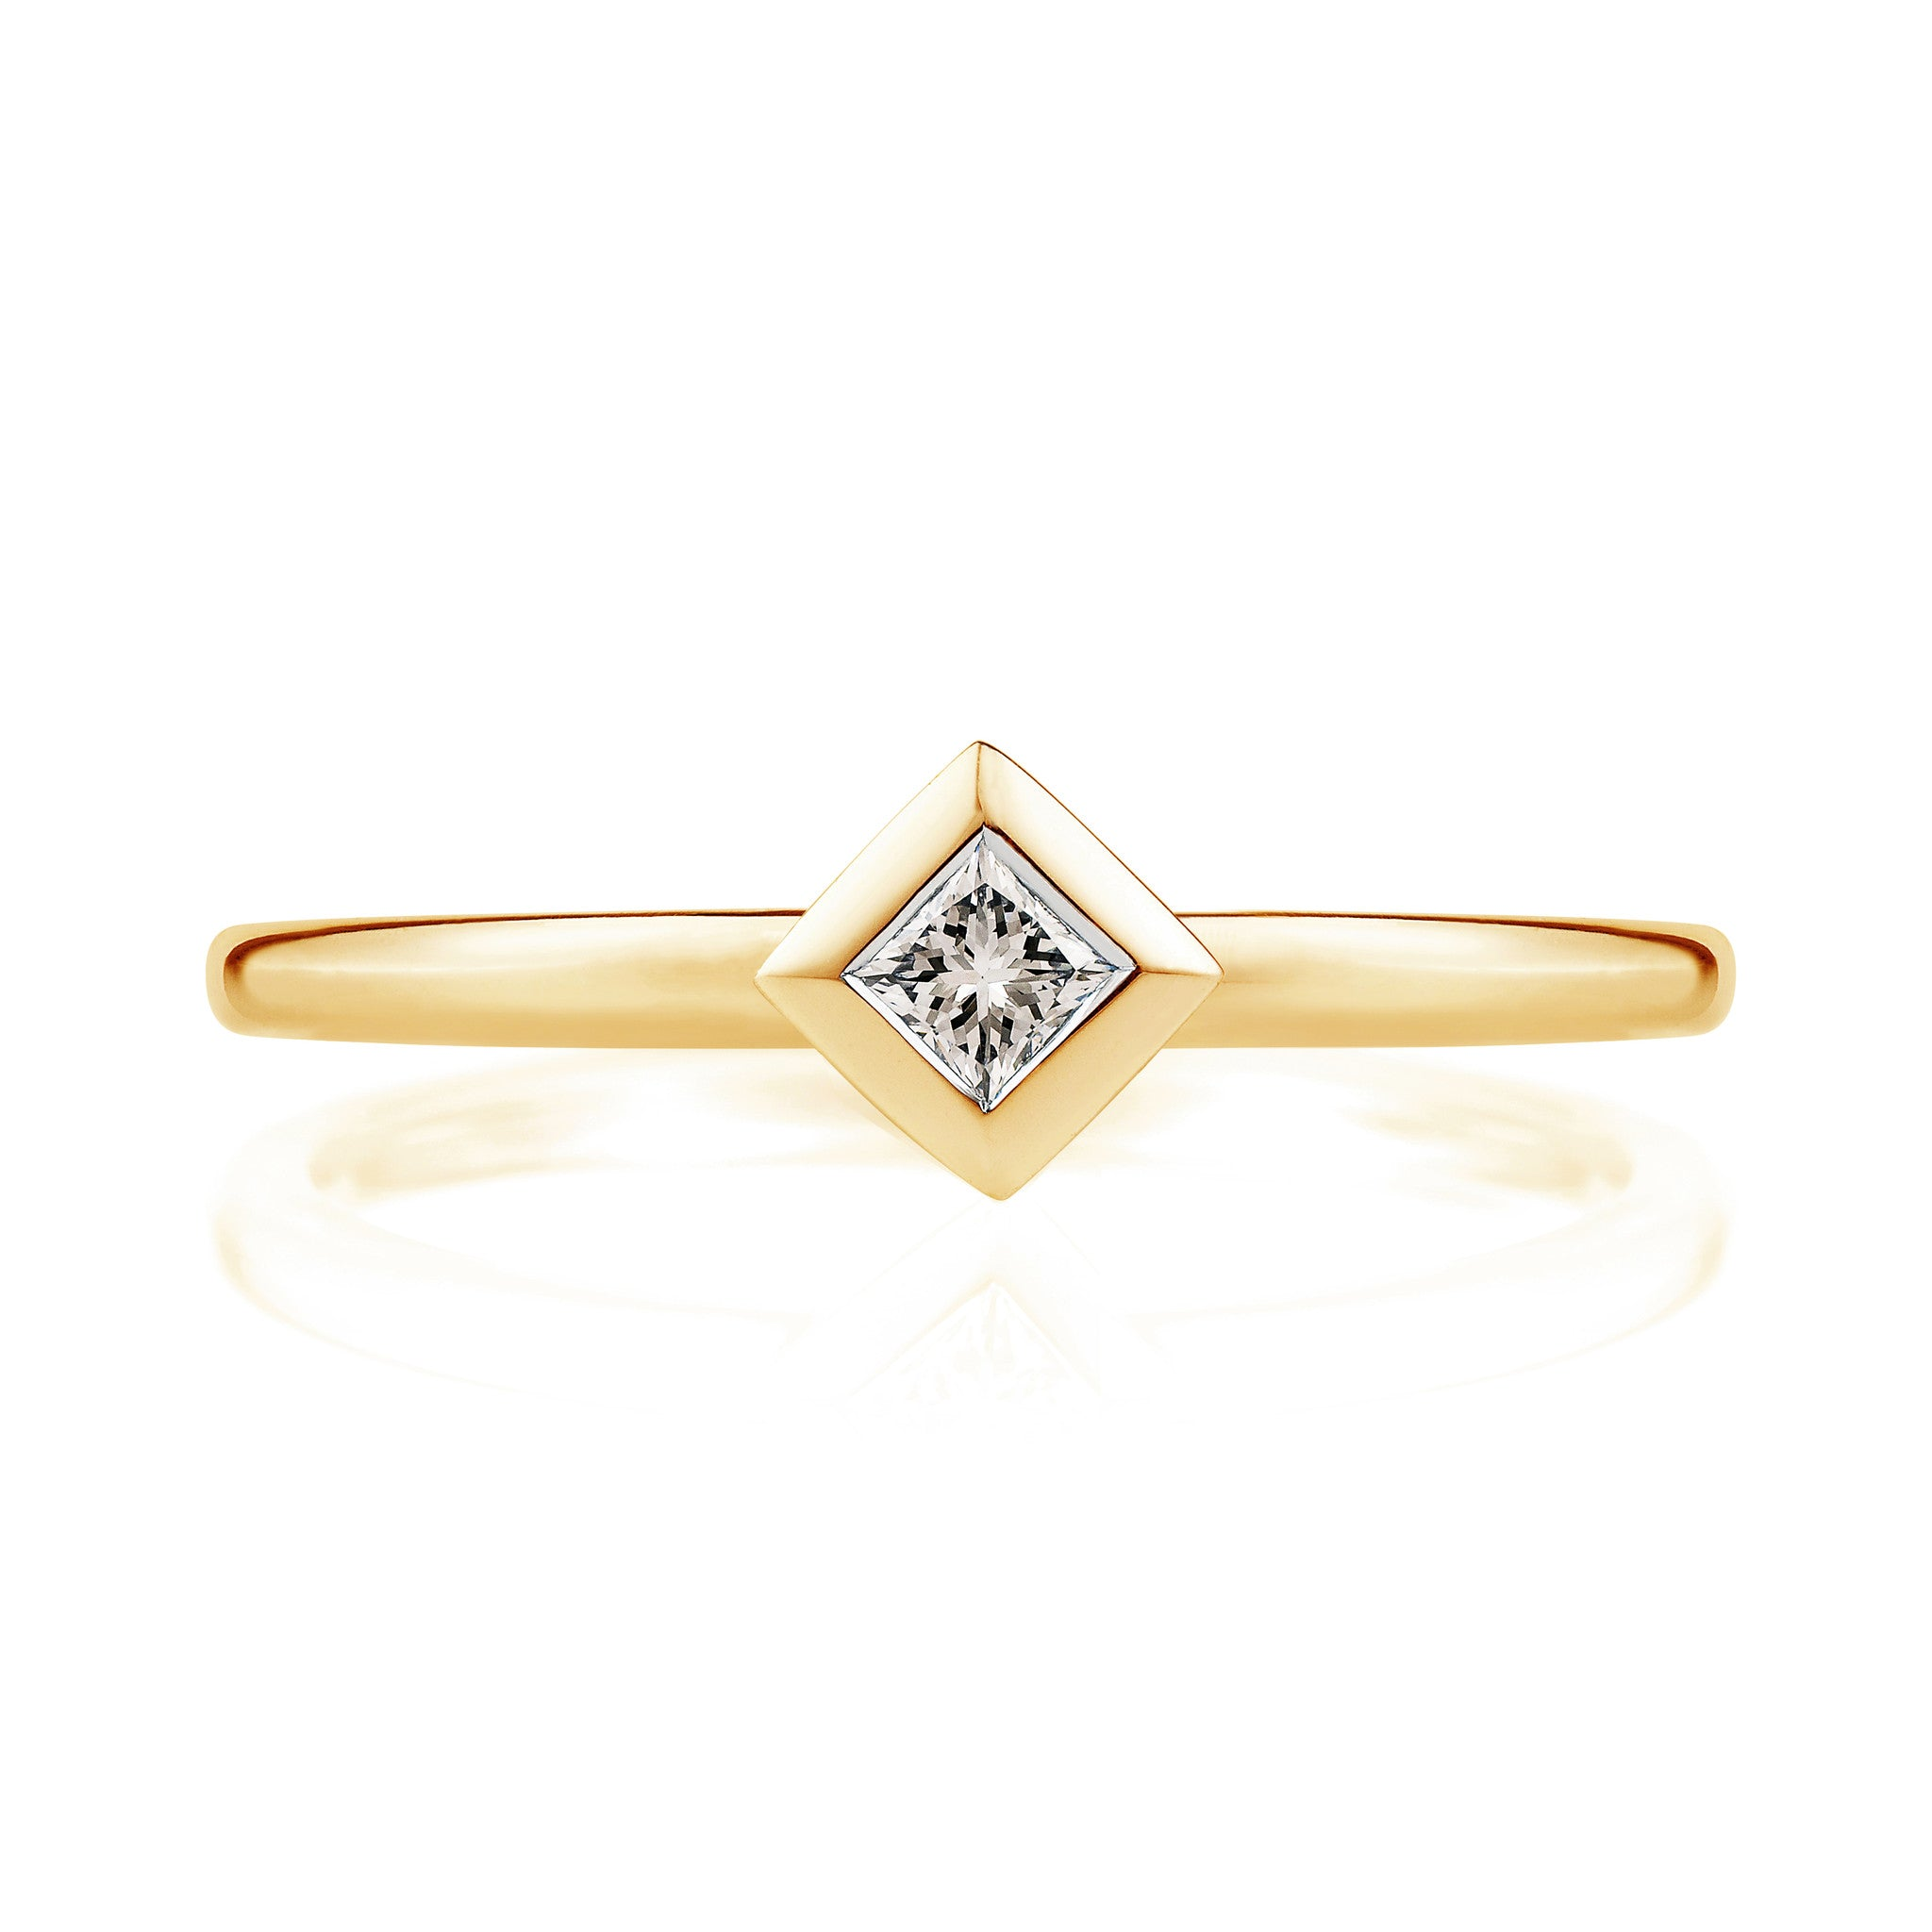 Diamond Pyramid Ring in 18ct Yellow Gold